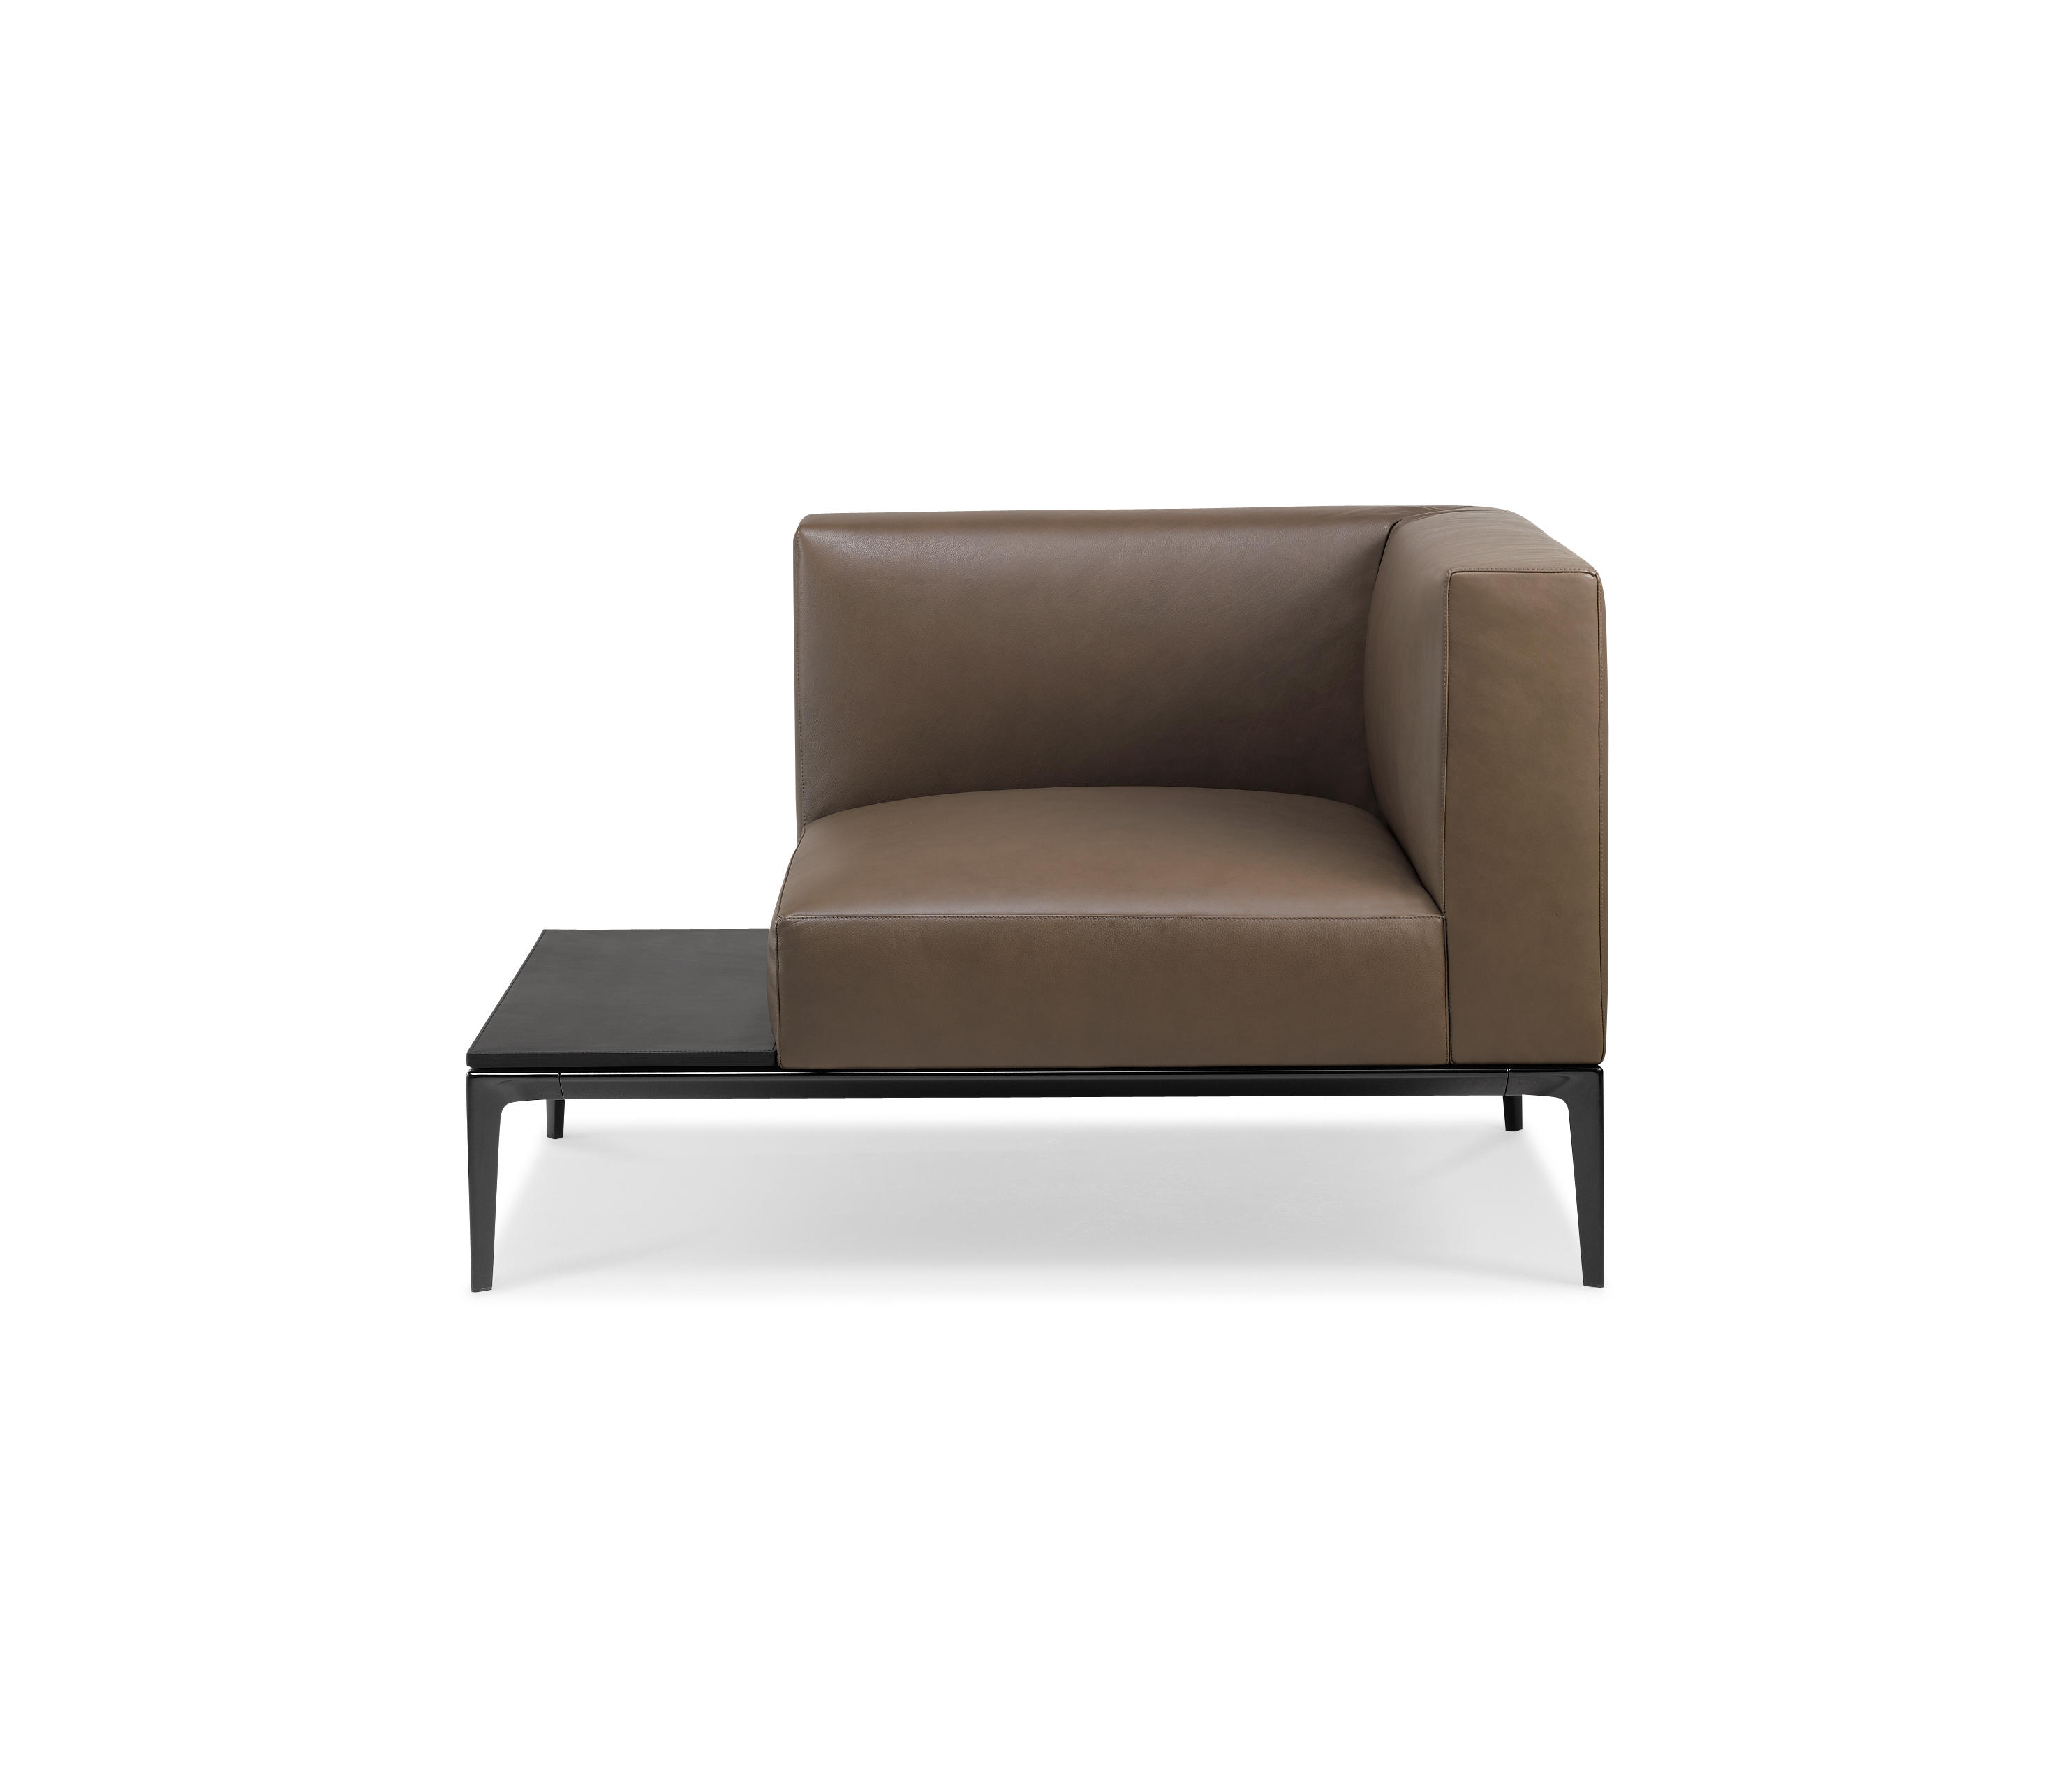 jaan living armchair lounge chairs from walter knoll architonic. Black Bedroom Furniture Sets. Home Design Ideas